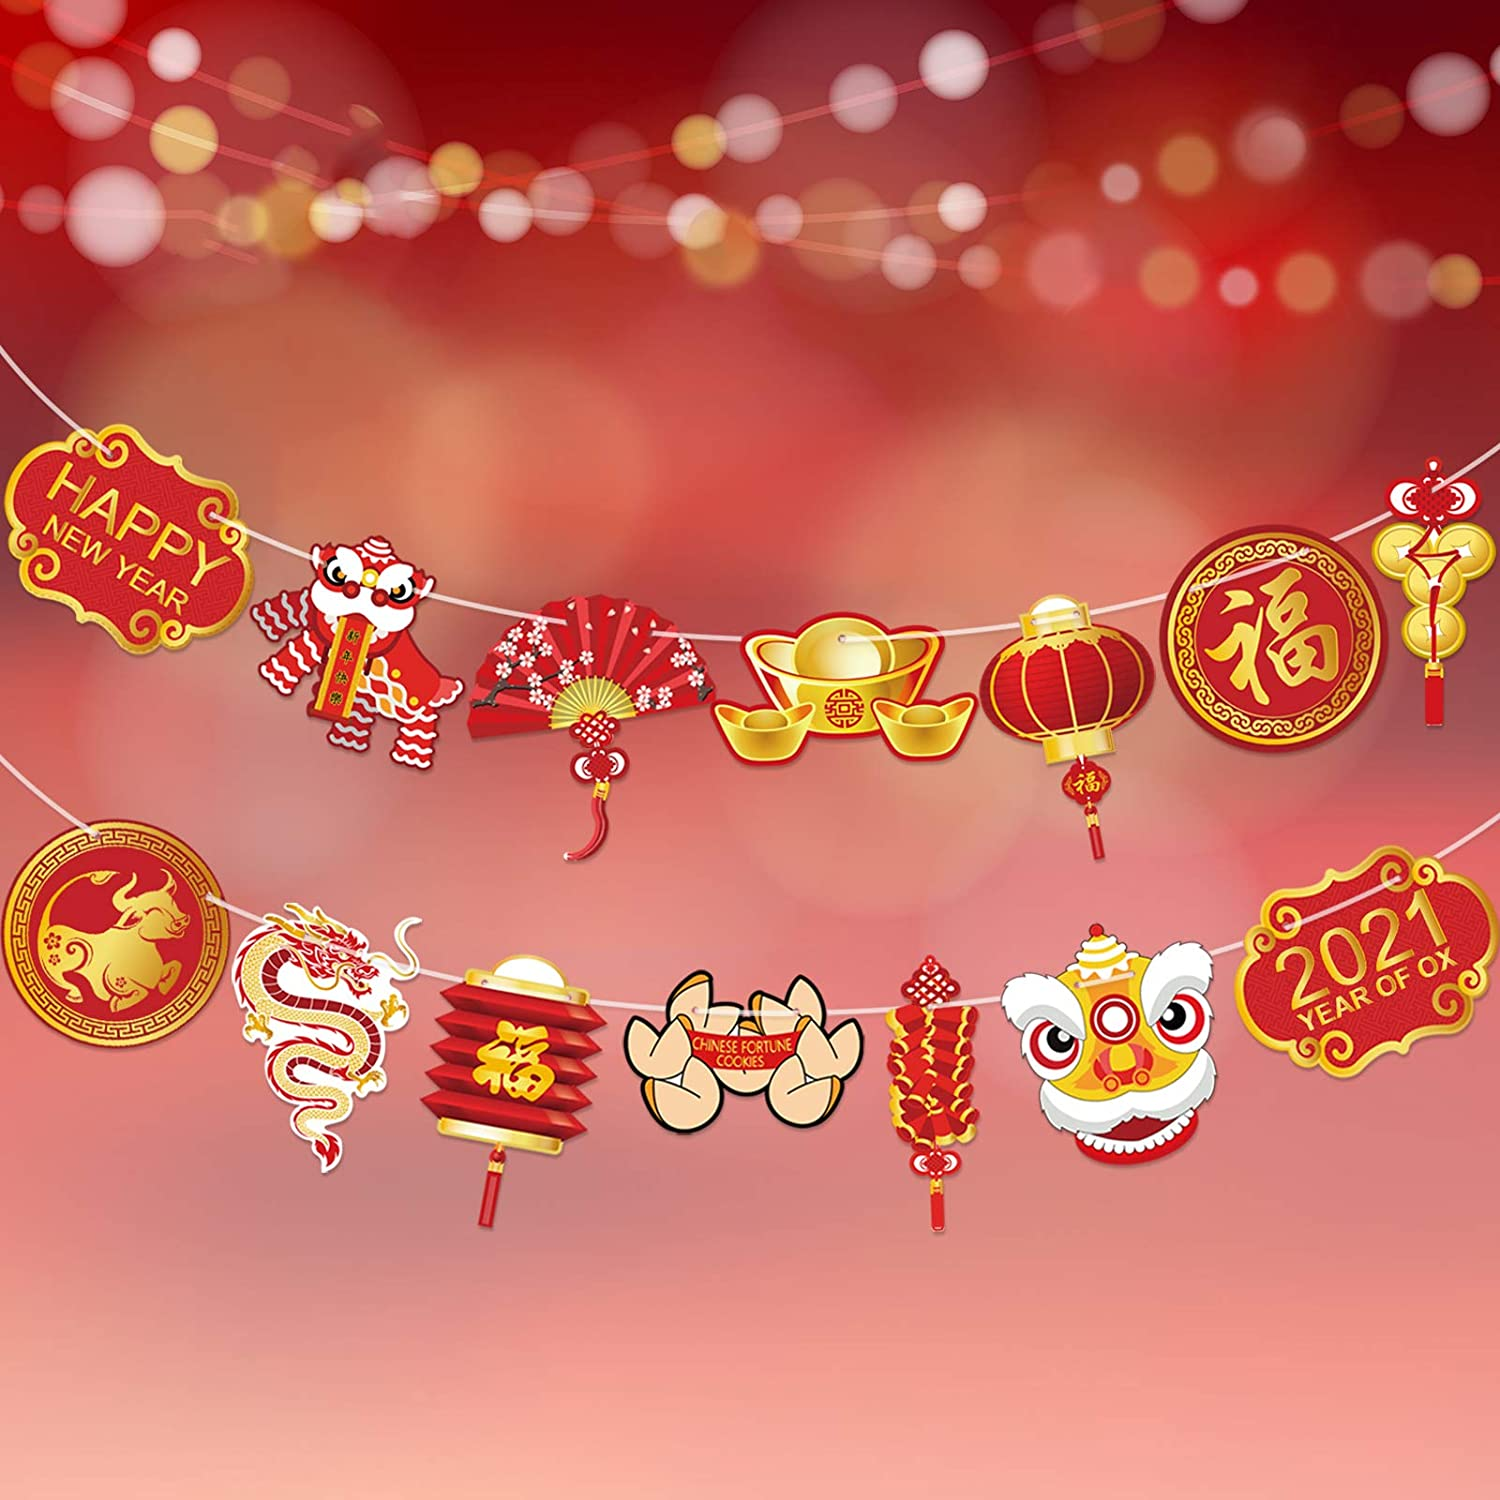 6 CHINESE RED GOOD WISHES PAPER PARTY BANNER NEW YEAR BIRTHDAY HOME DECORATION